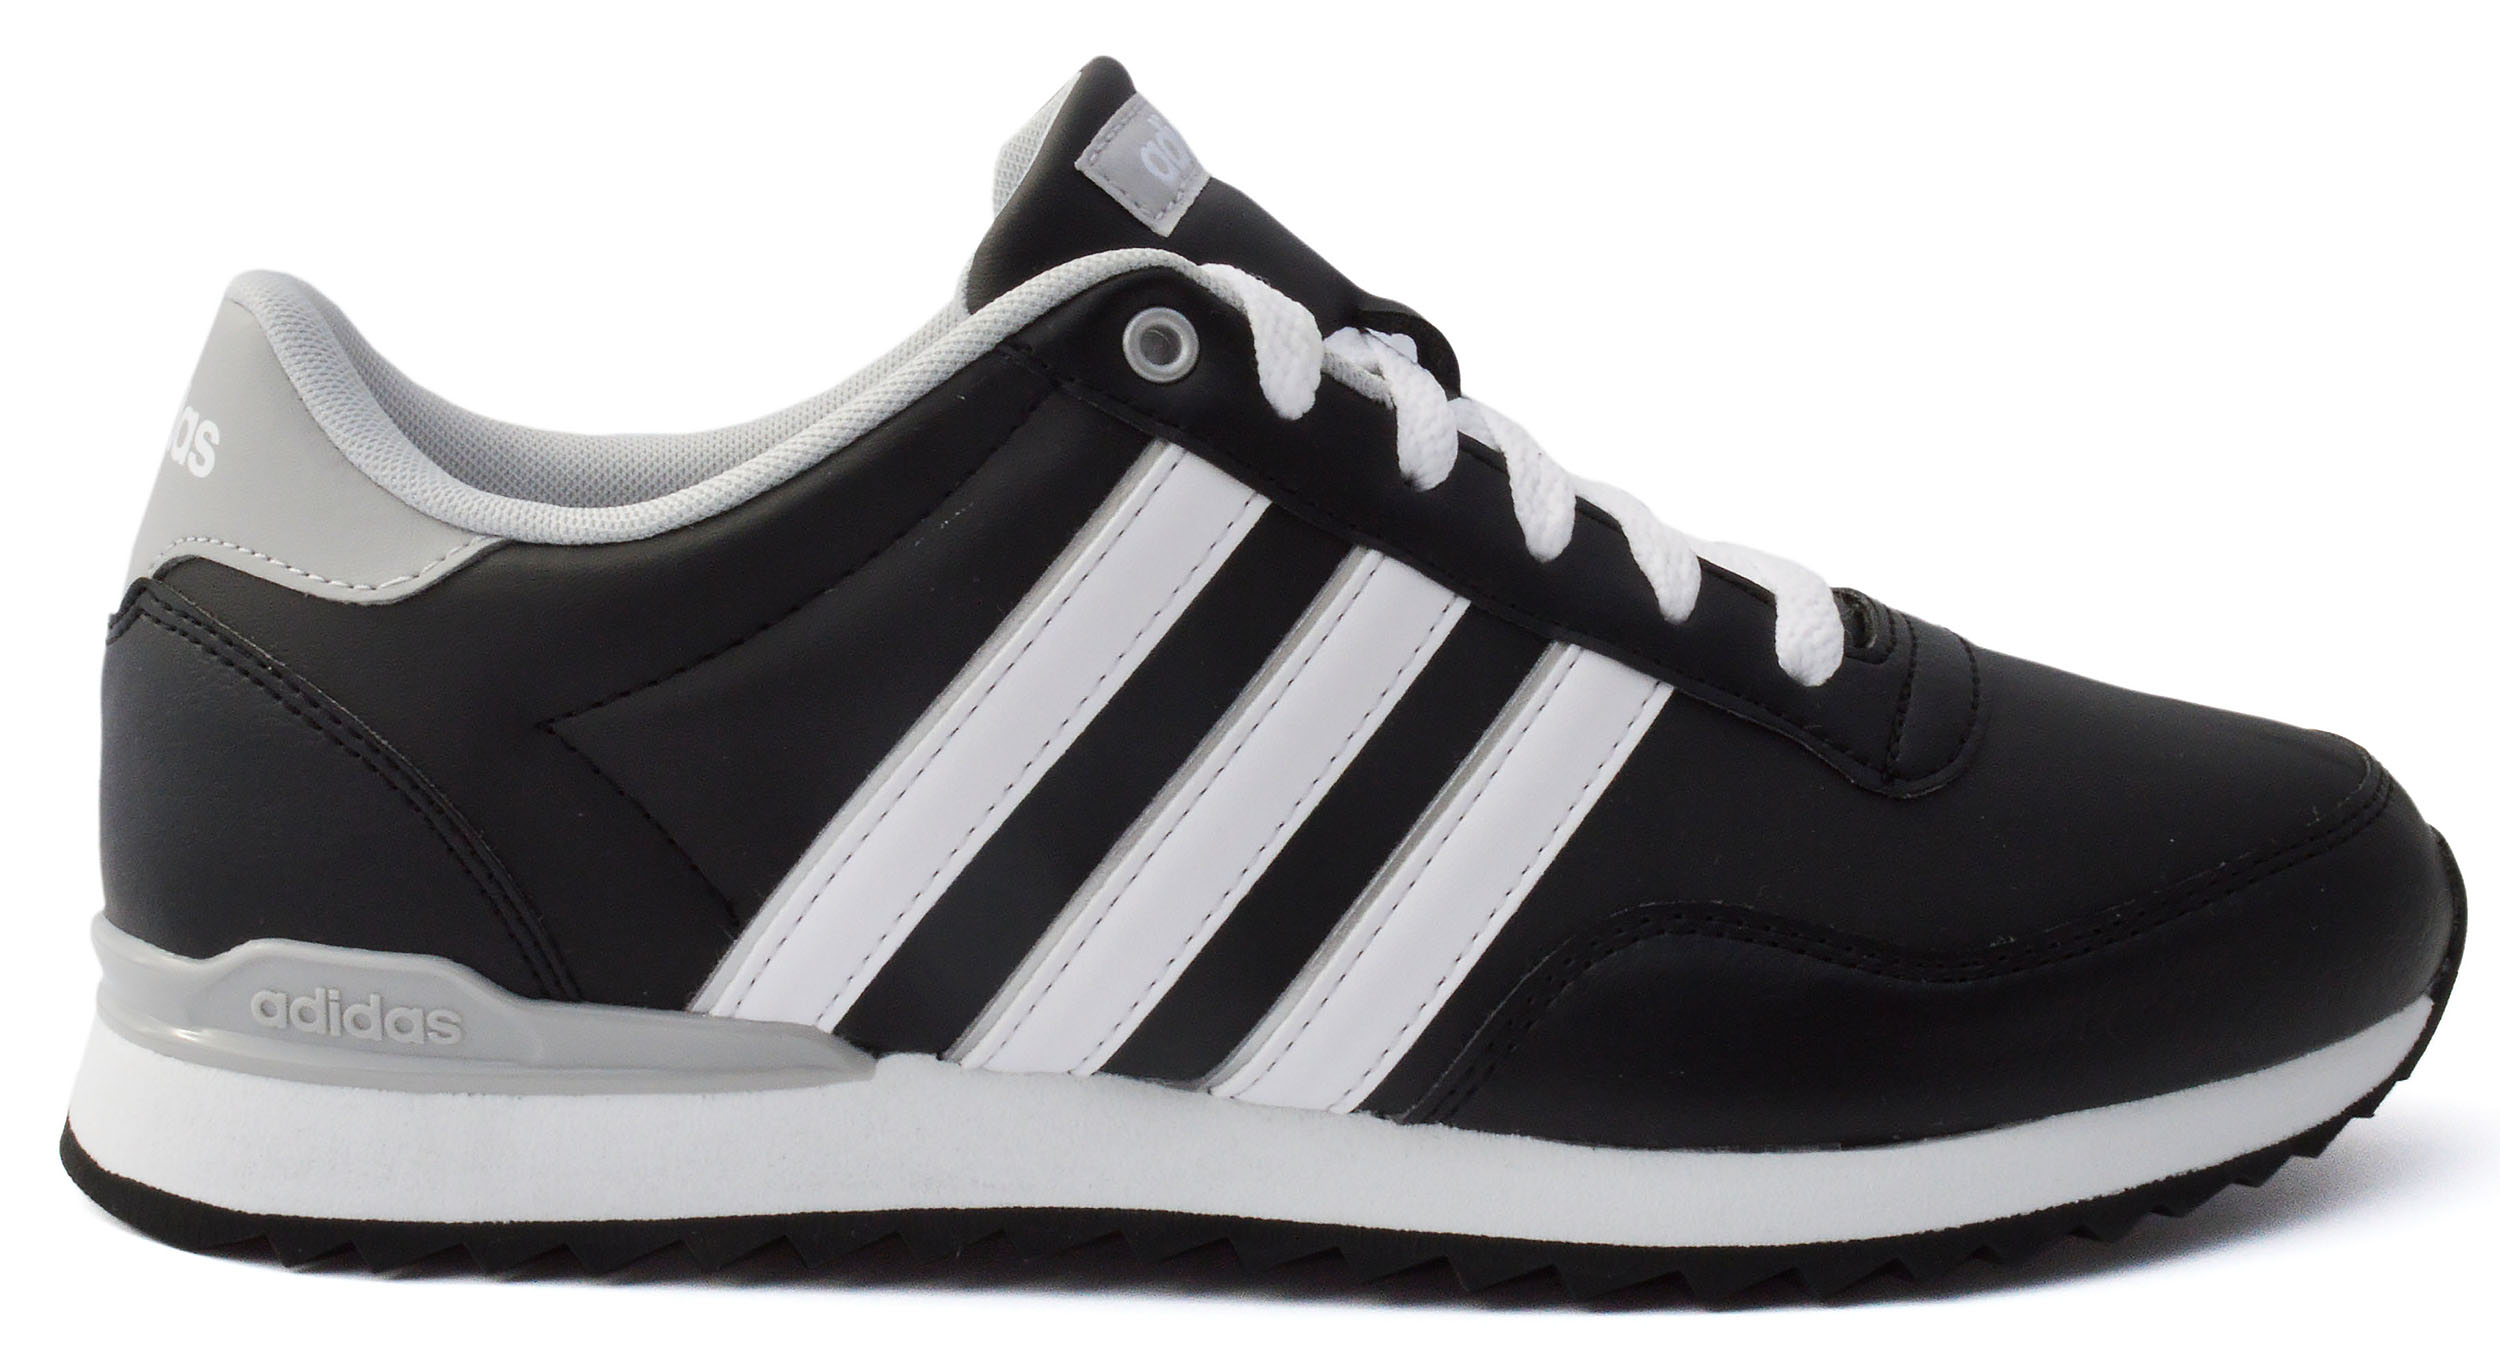 ADIDAS JOGGER CL BB9682 BUTY M?SKIE R 46